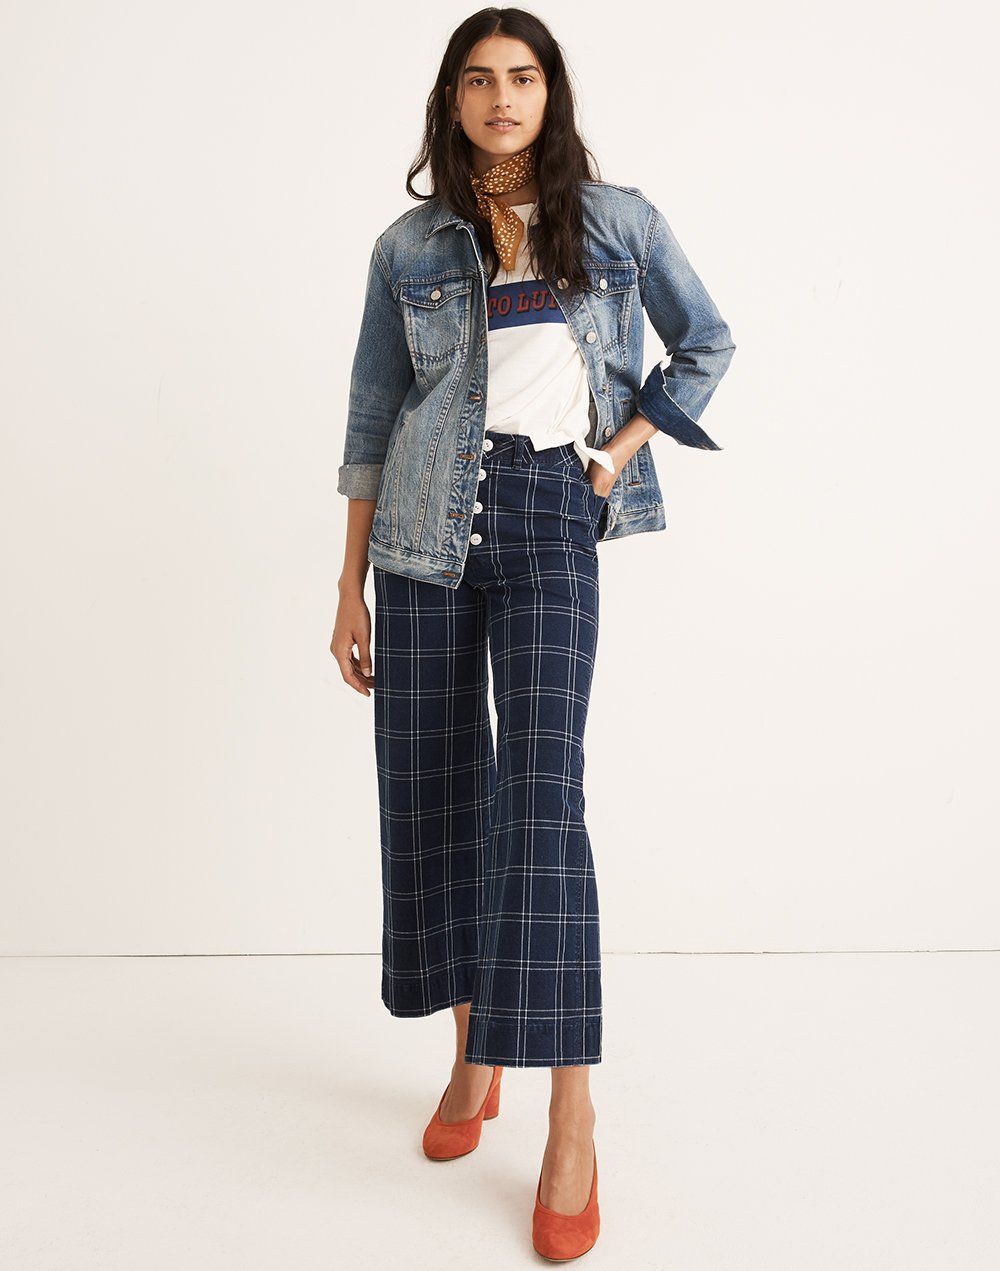 madewell emmett wide-leg crop pants worn with the oversized jean jacket,  out to lunch retro tee, bandana + the reid pump.